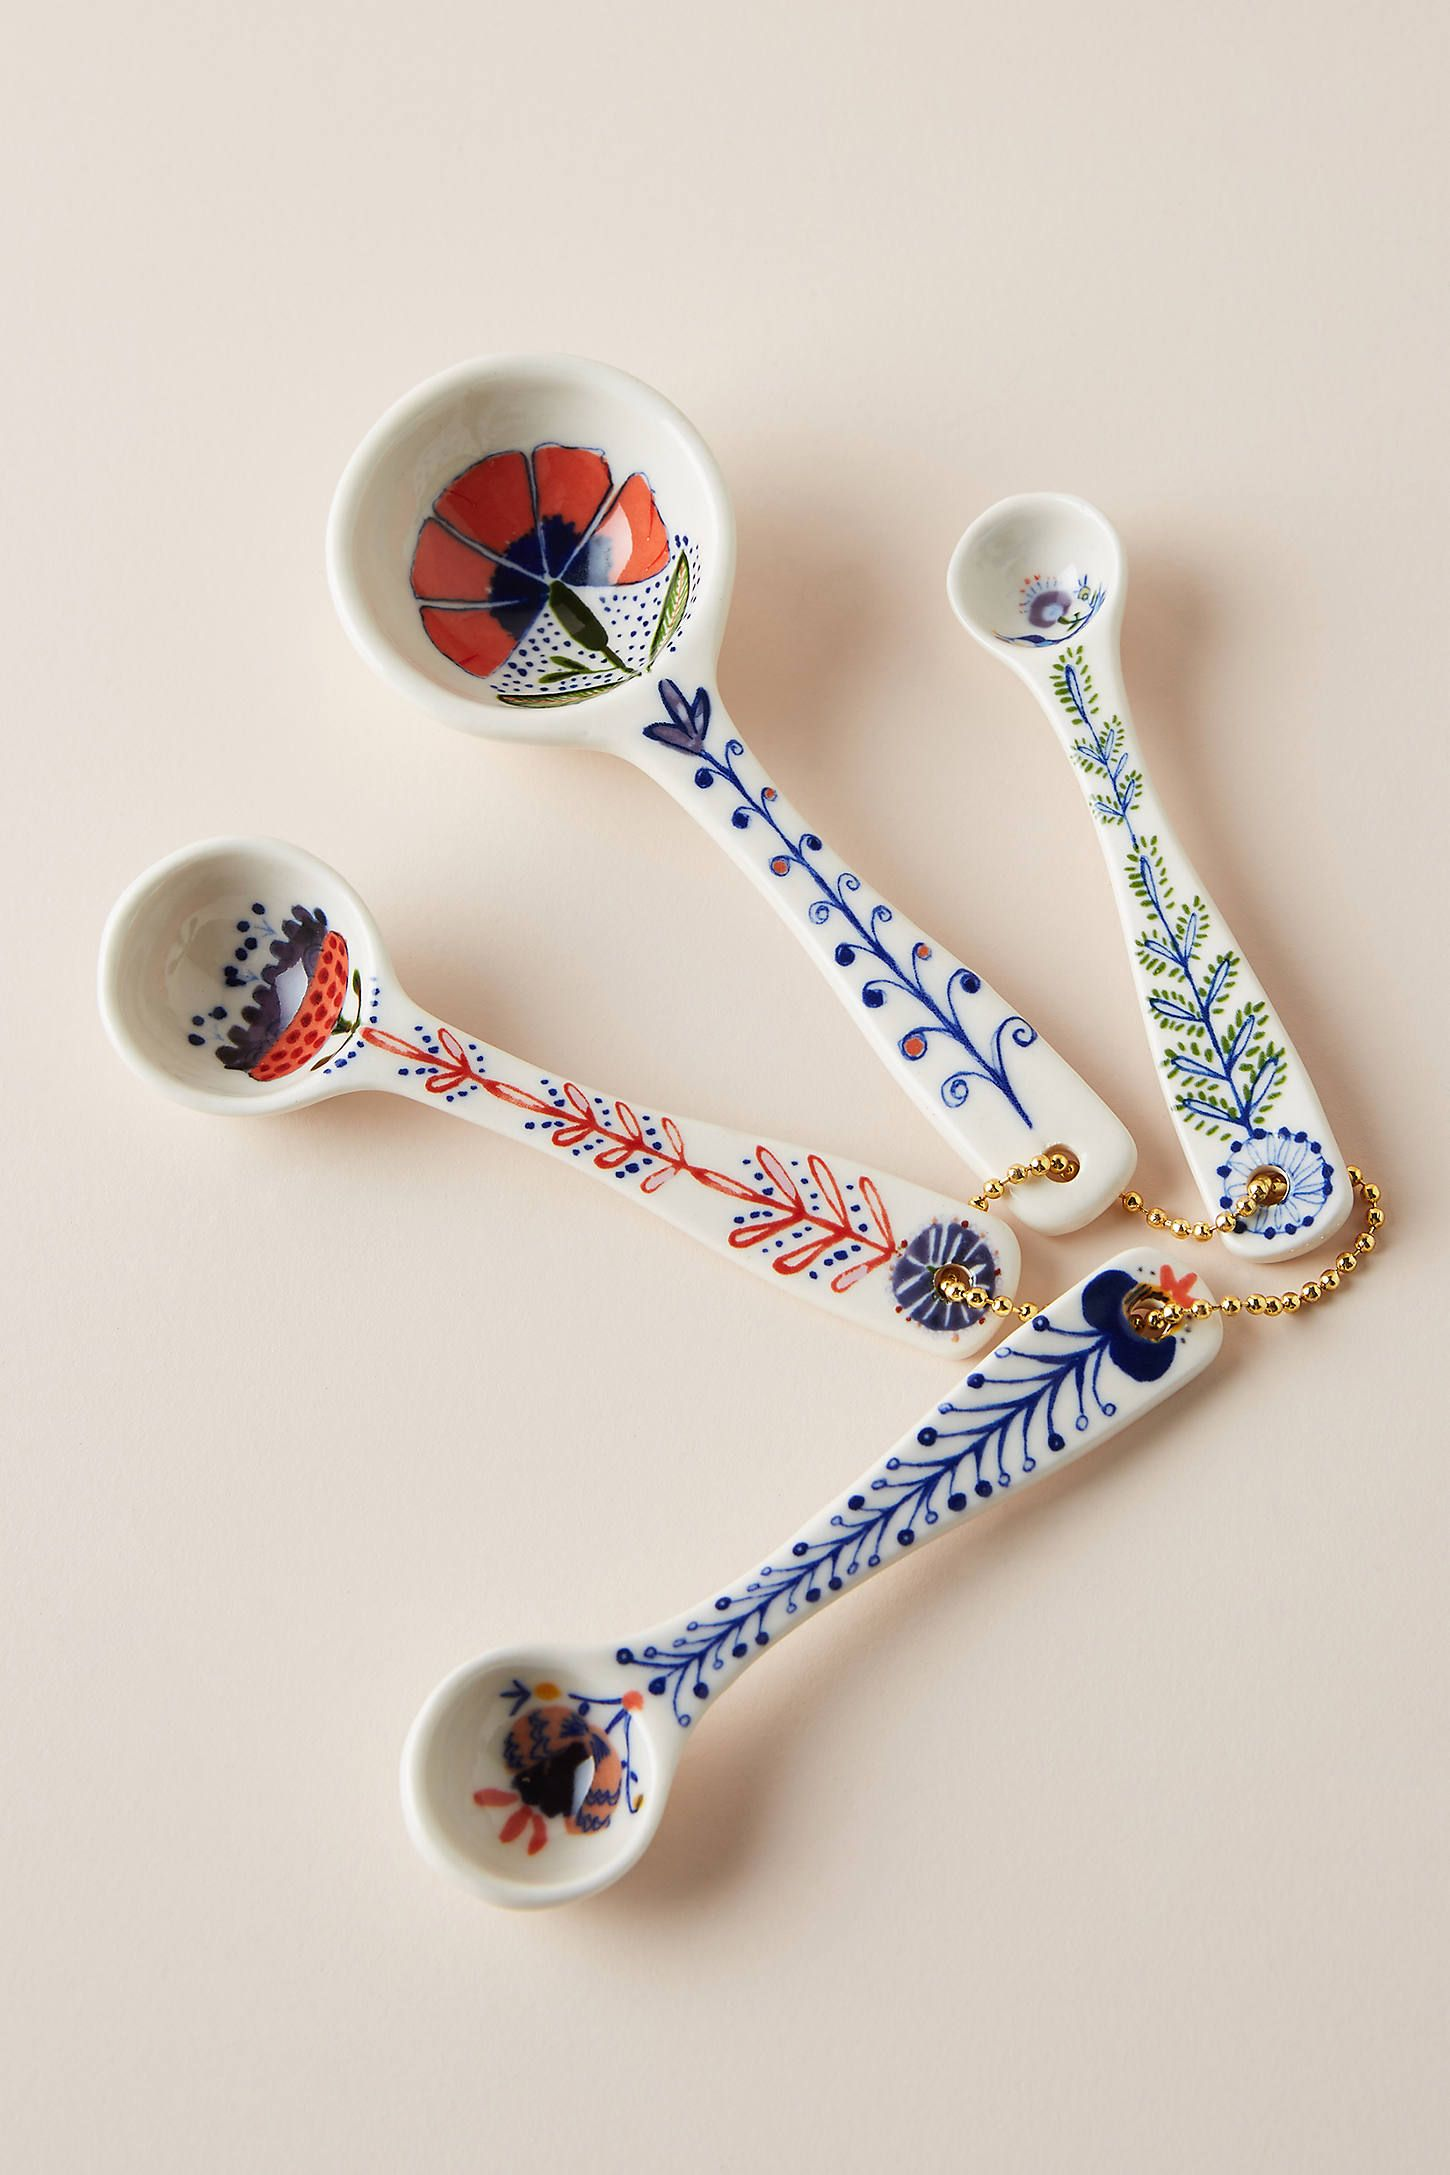 Marian Measuring Spoons, Set of 4